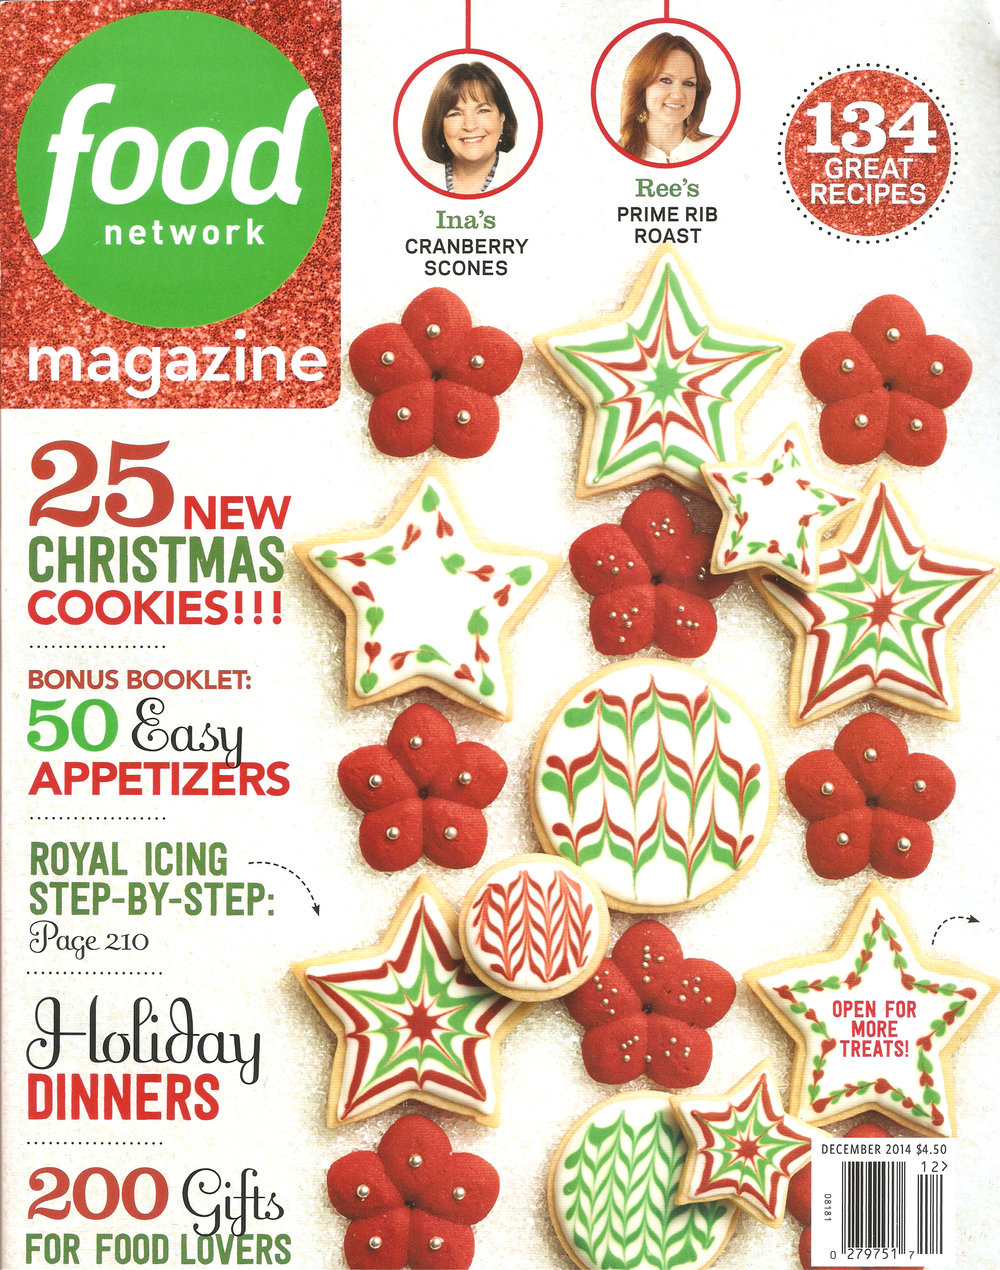 FOOD NETWORK MAGAZINE - December 2014